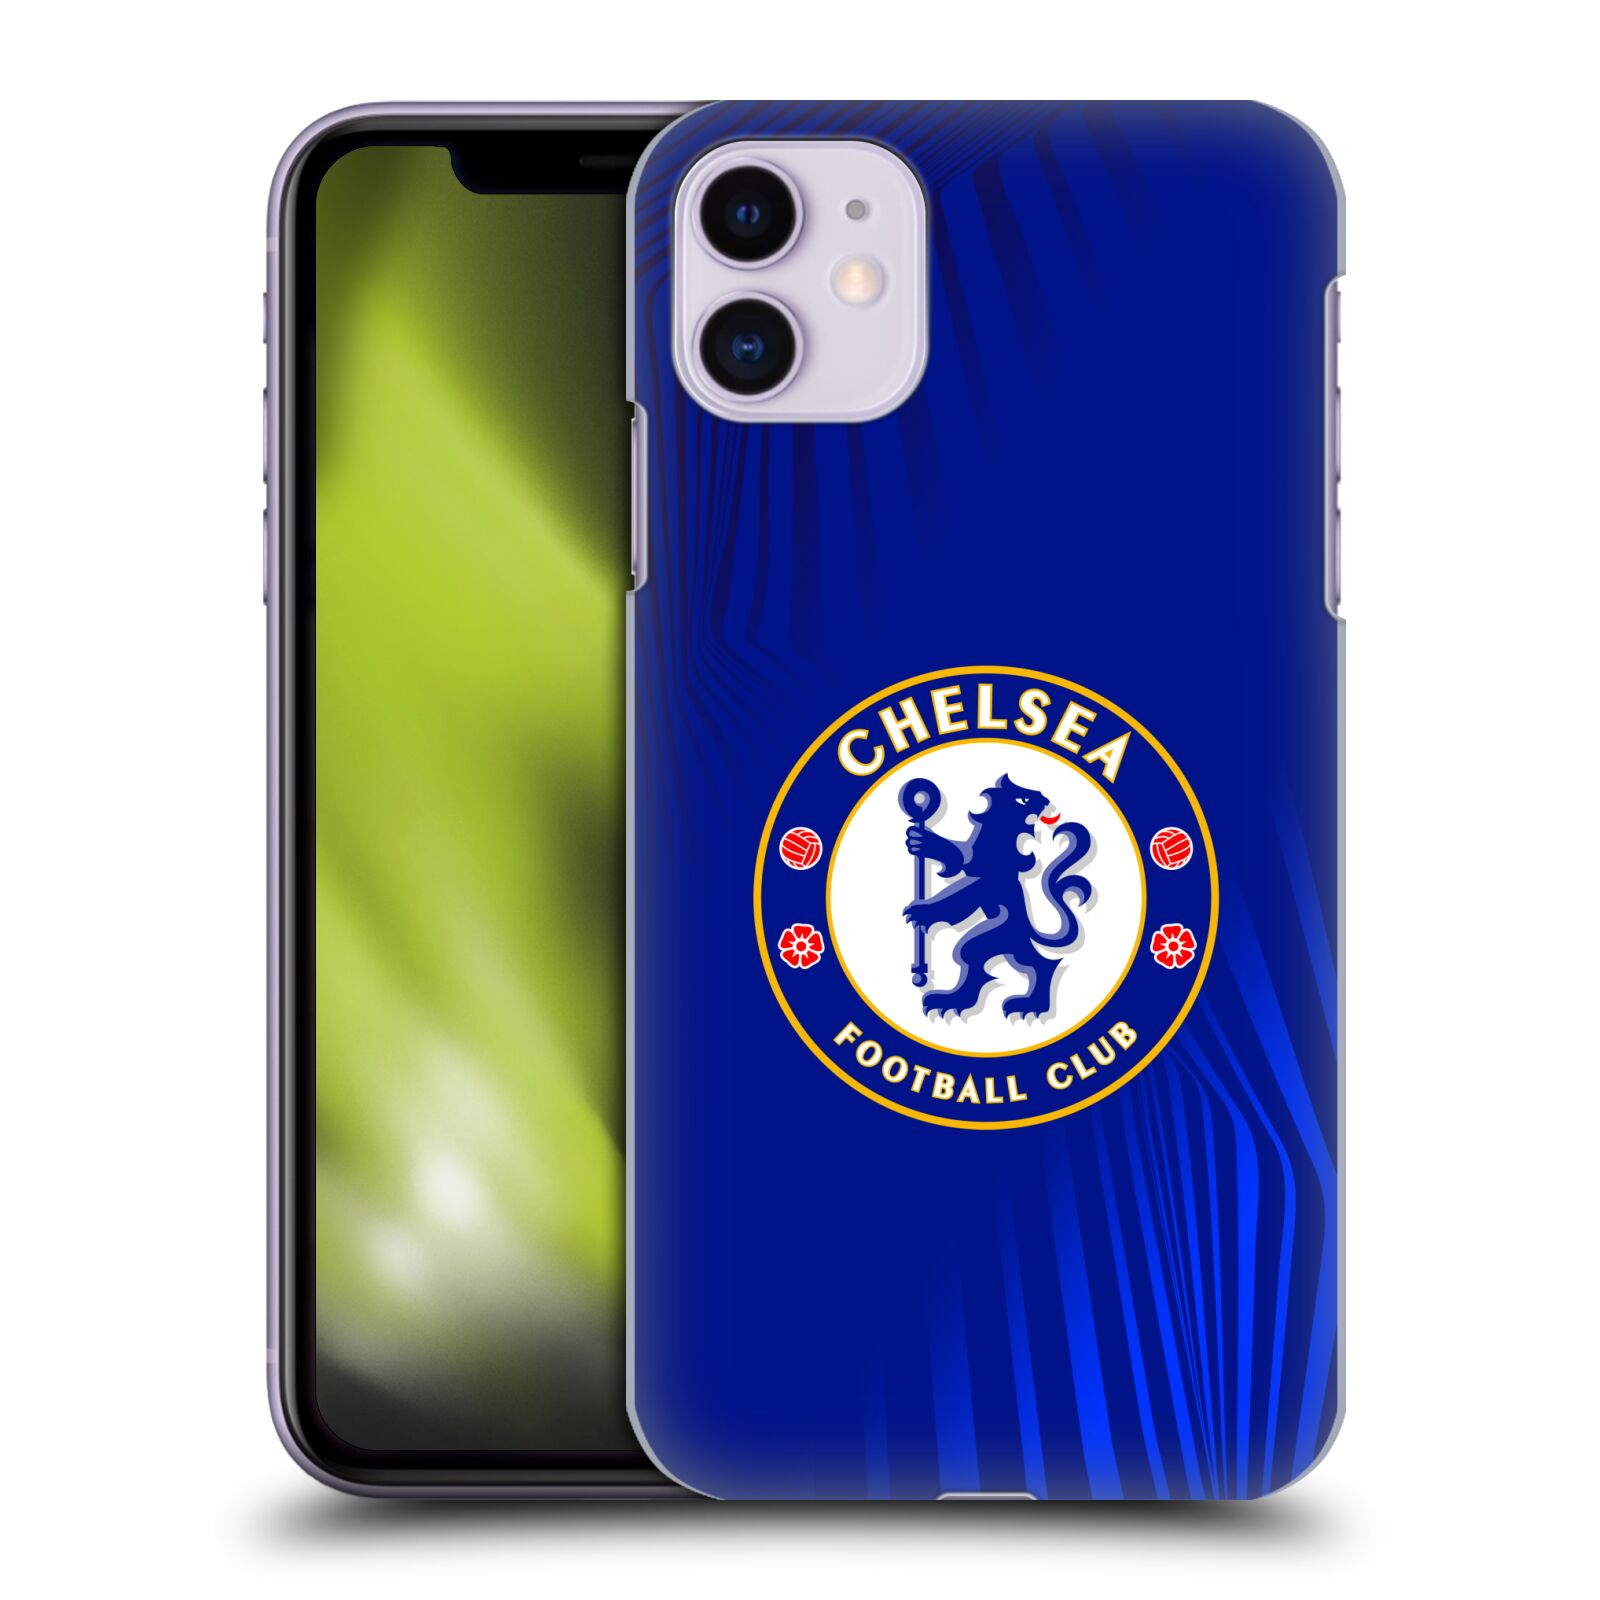 Offizielle Chelsea Football Club 2019/20 Crest Super Grafik Hülle für Apple iPhone 11